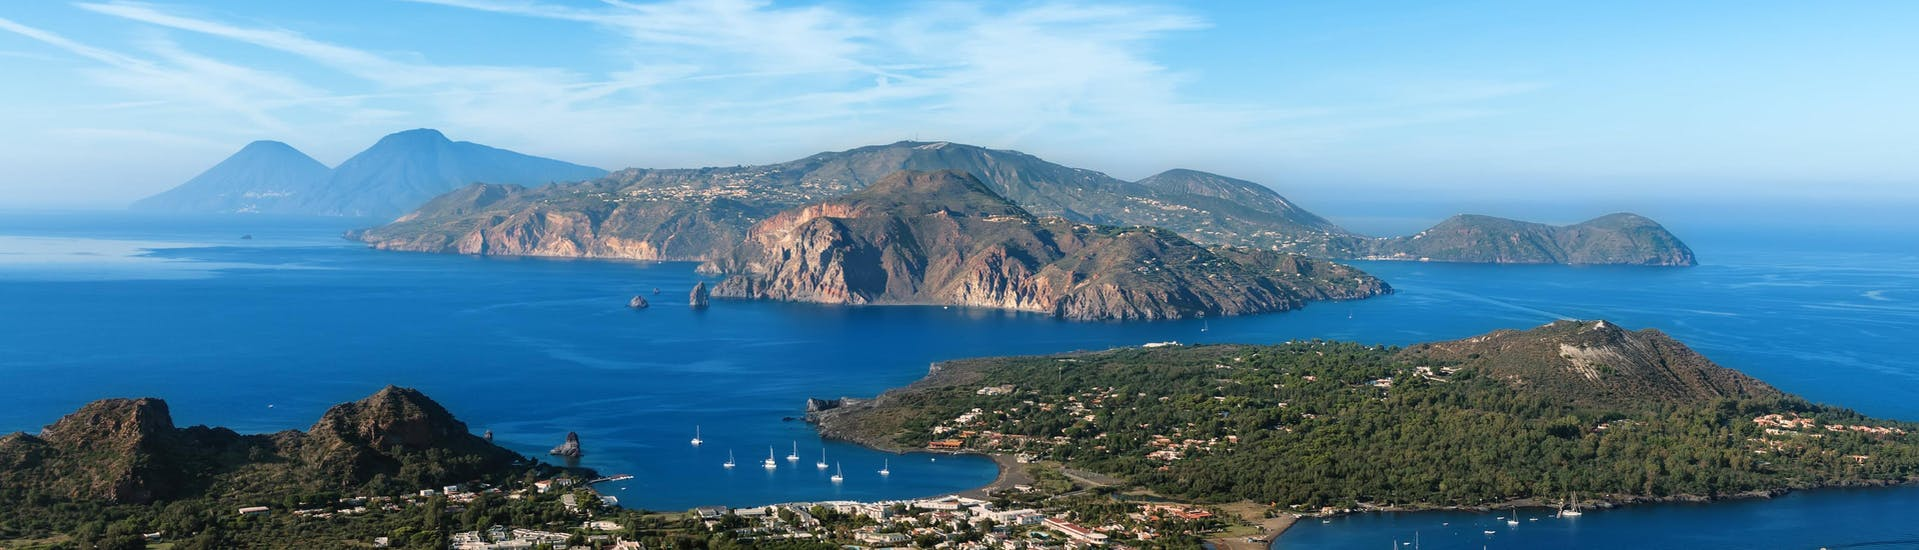 An image of the majestic volcanoes that one can see on a boat trip to the aeolian islands.